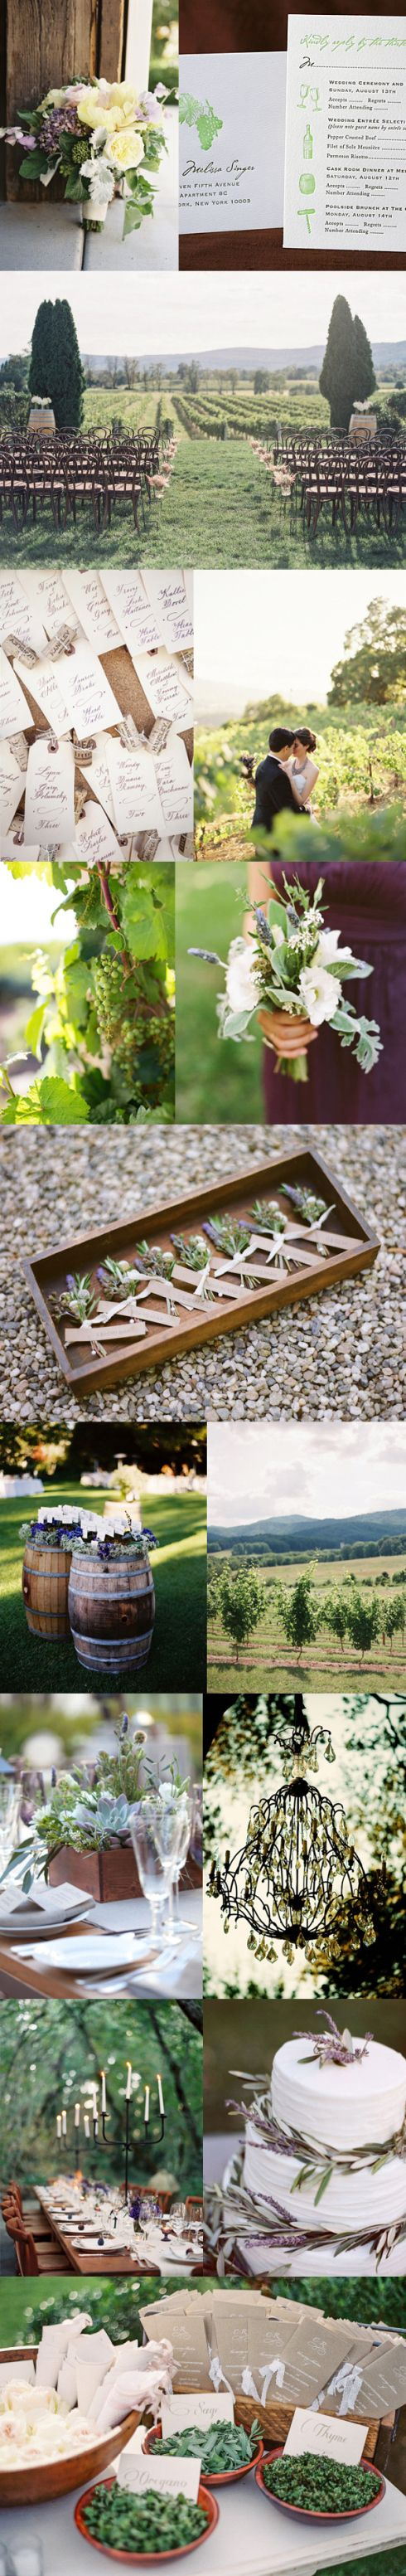 rustic romantic vineyard wedding inspiration board | purple and green color palette. succulents and table candle holders.